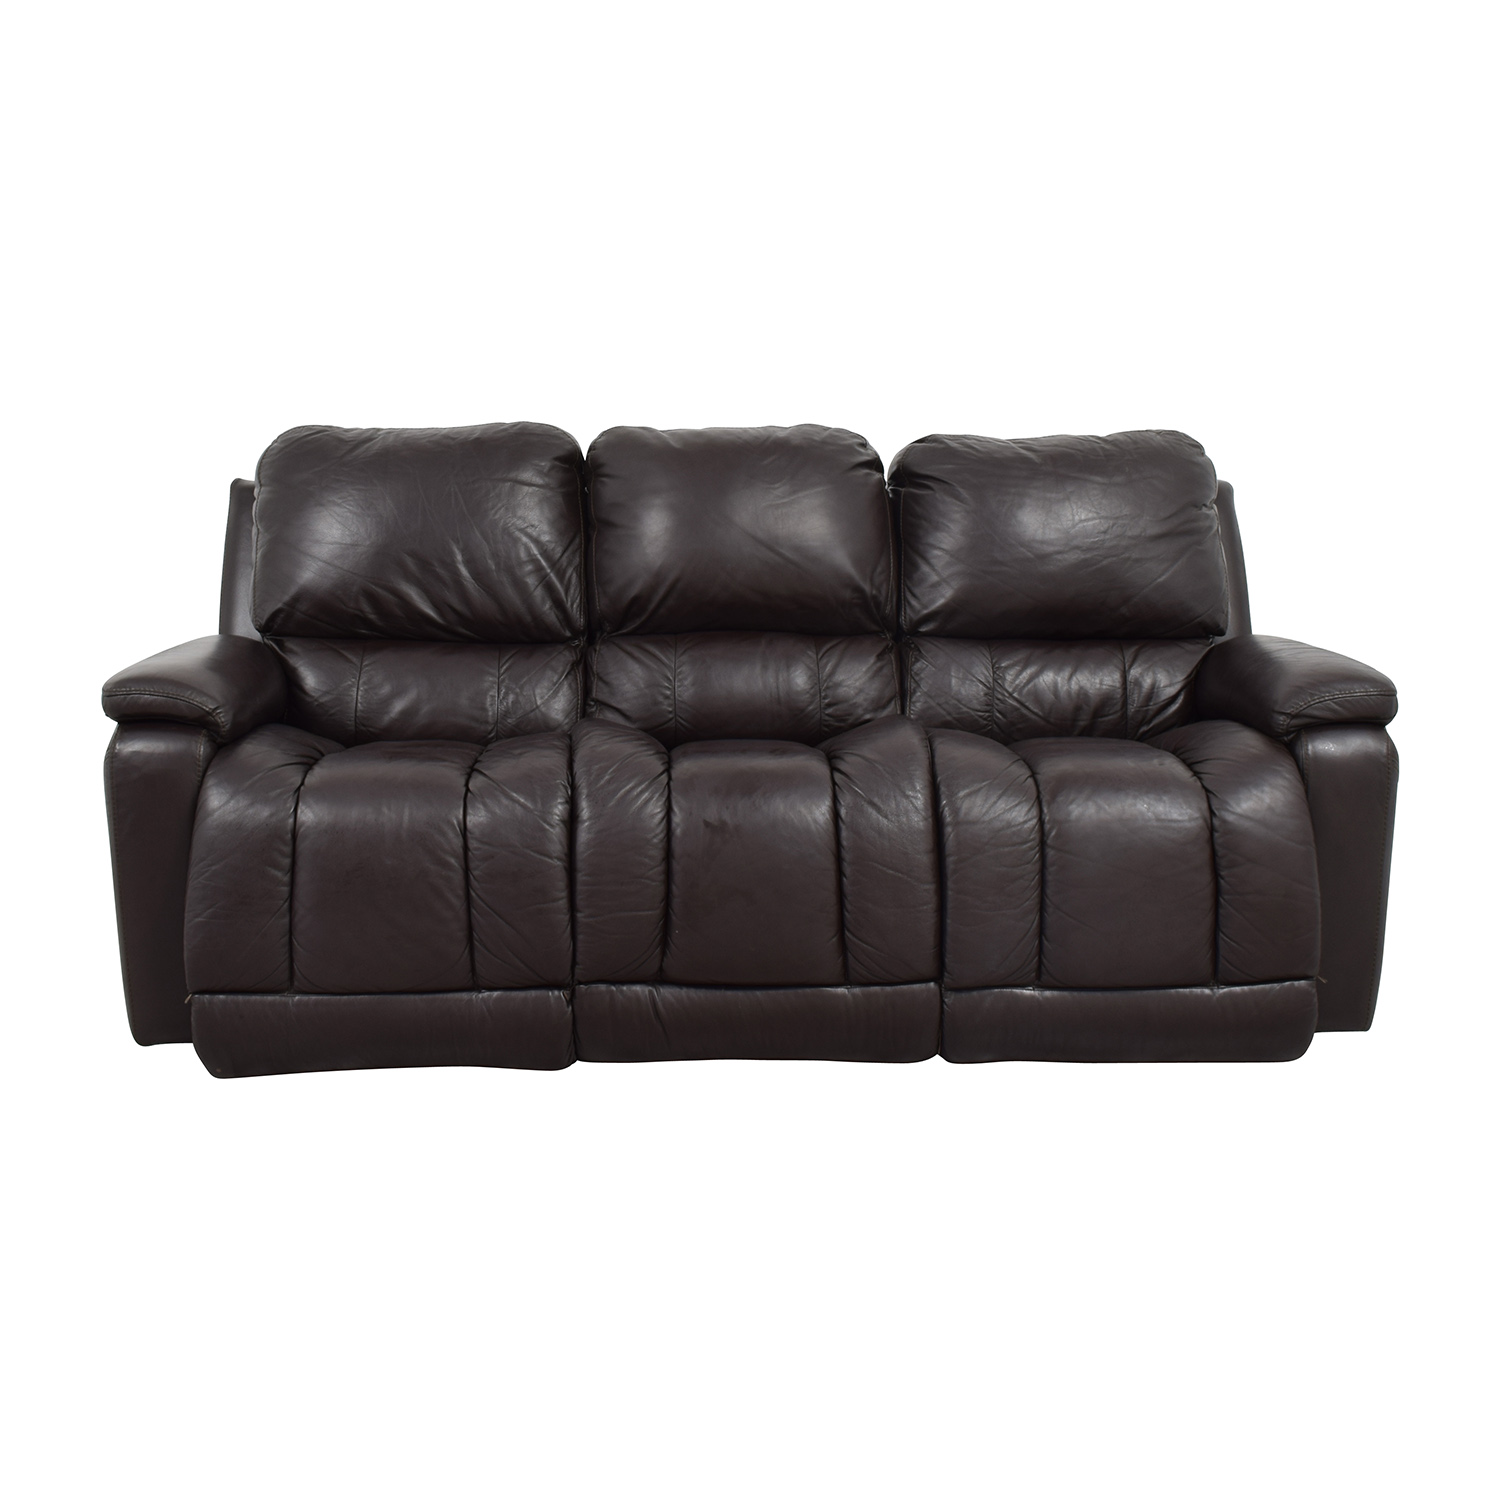 77 OFF  LaZBoy LaZBoy Brown Leather Reclining Sofa